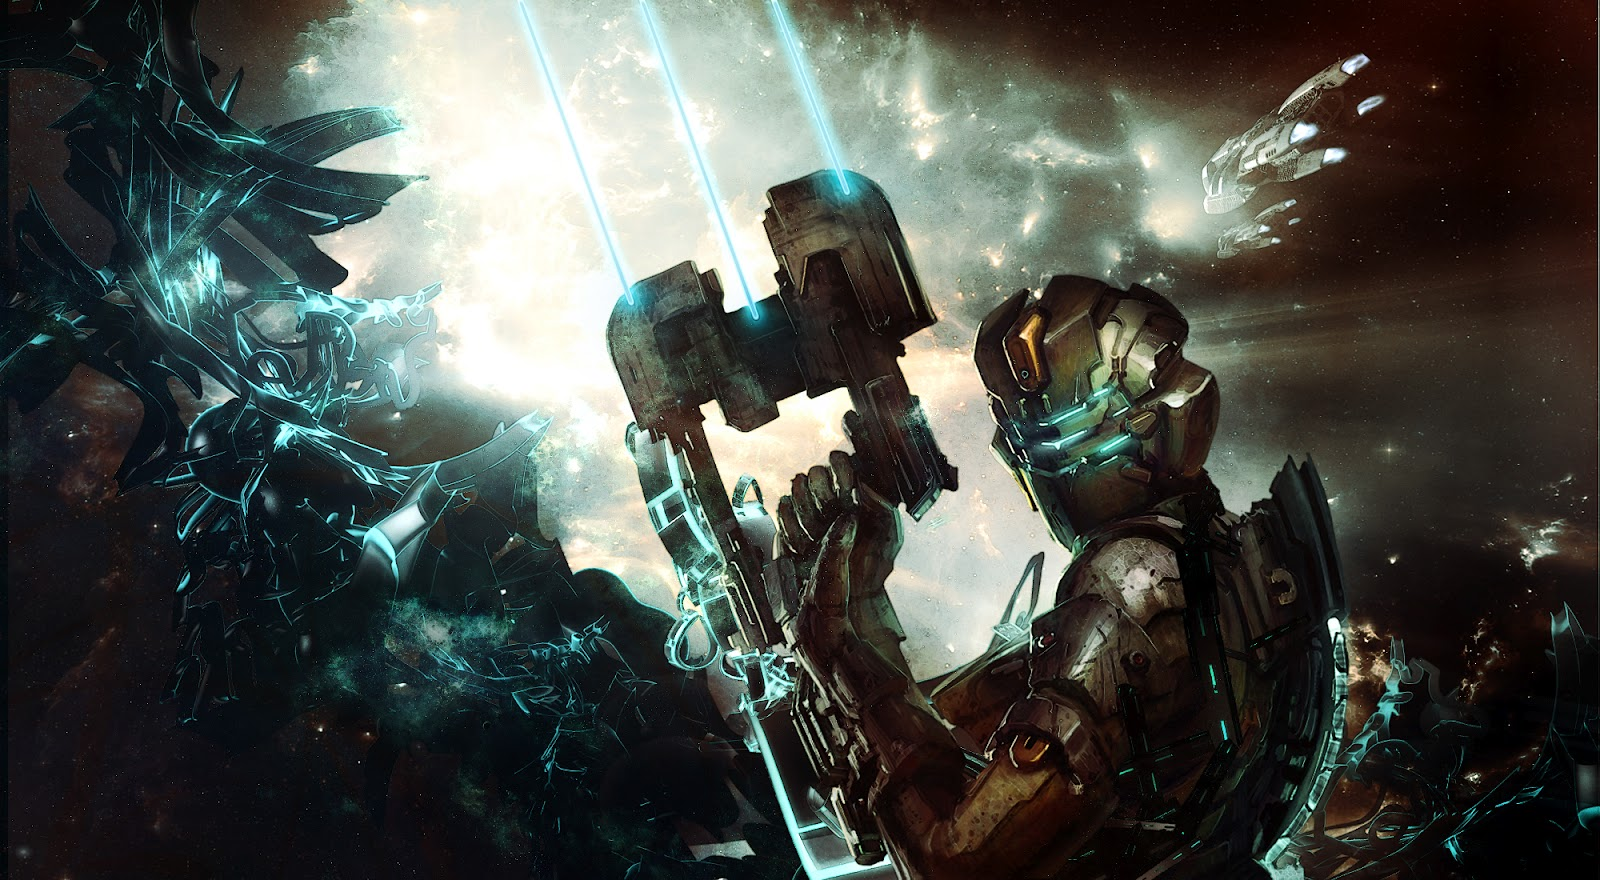 Dead Space 2 HD Wallpaper 1080p PiCsHoliC 1600x880